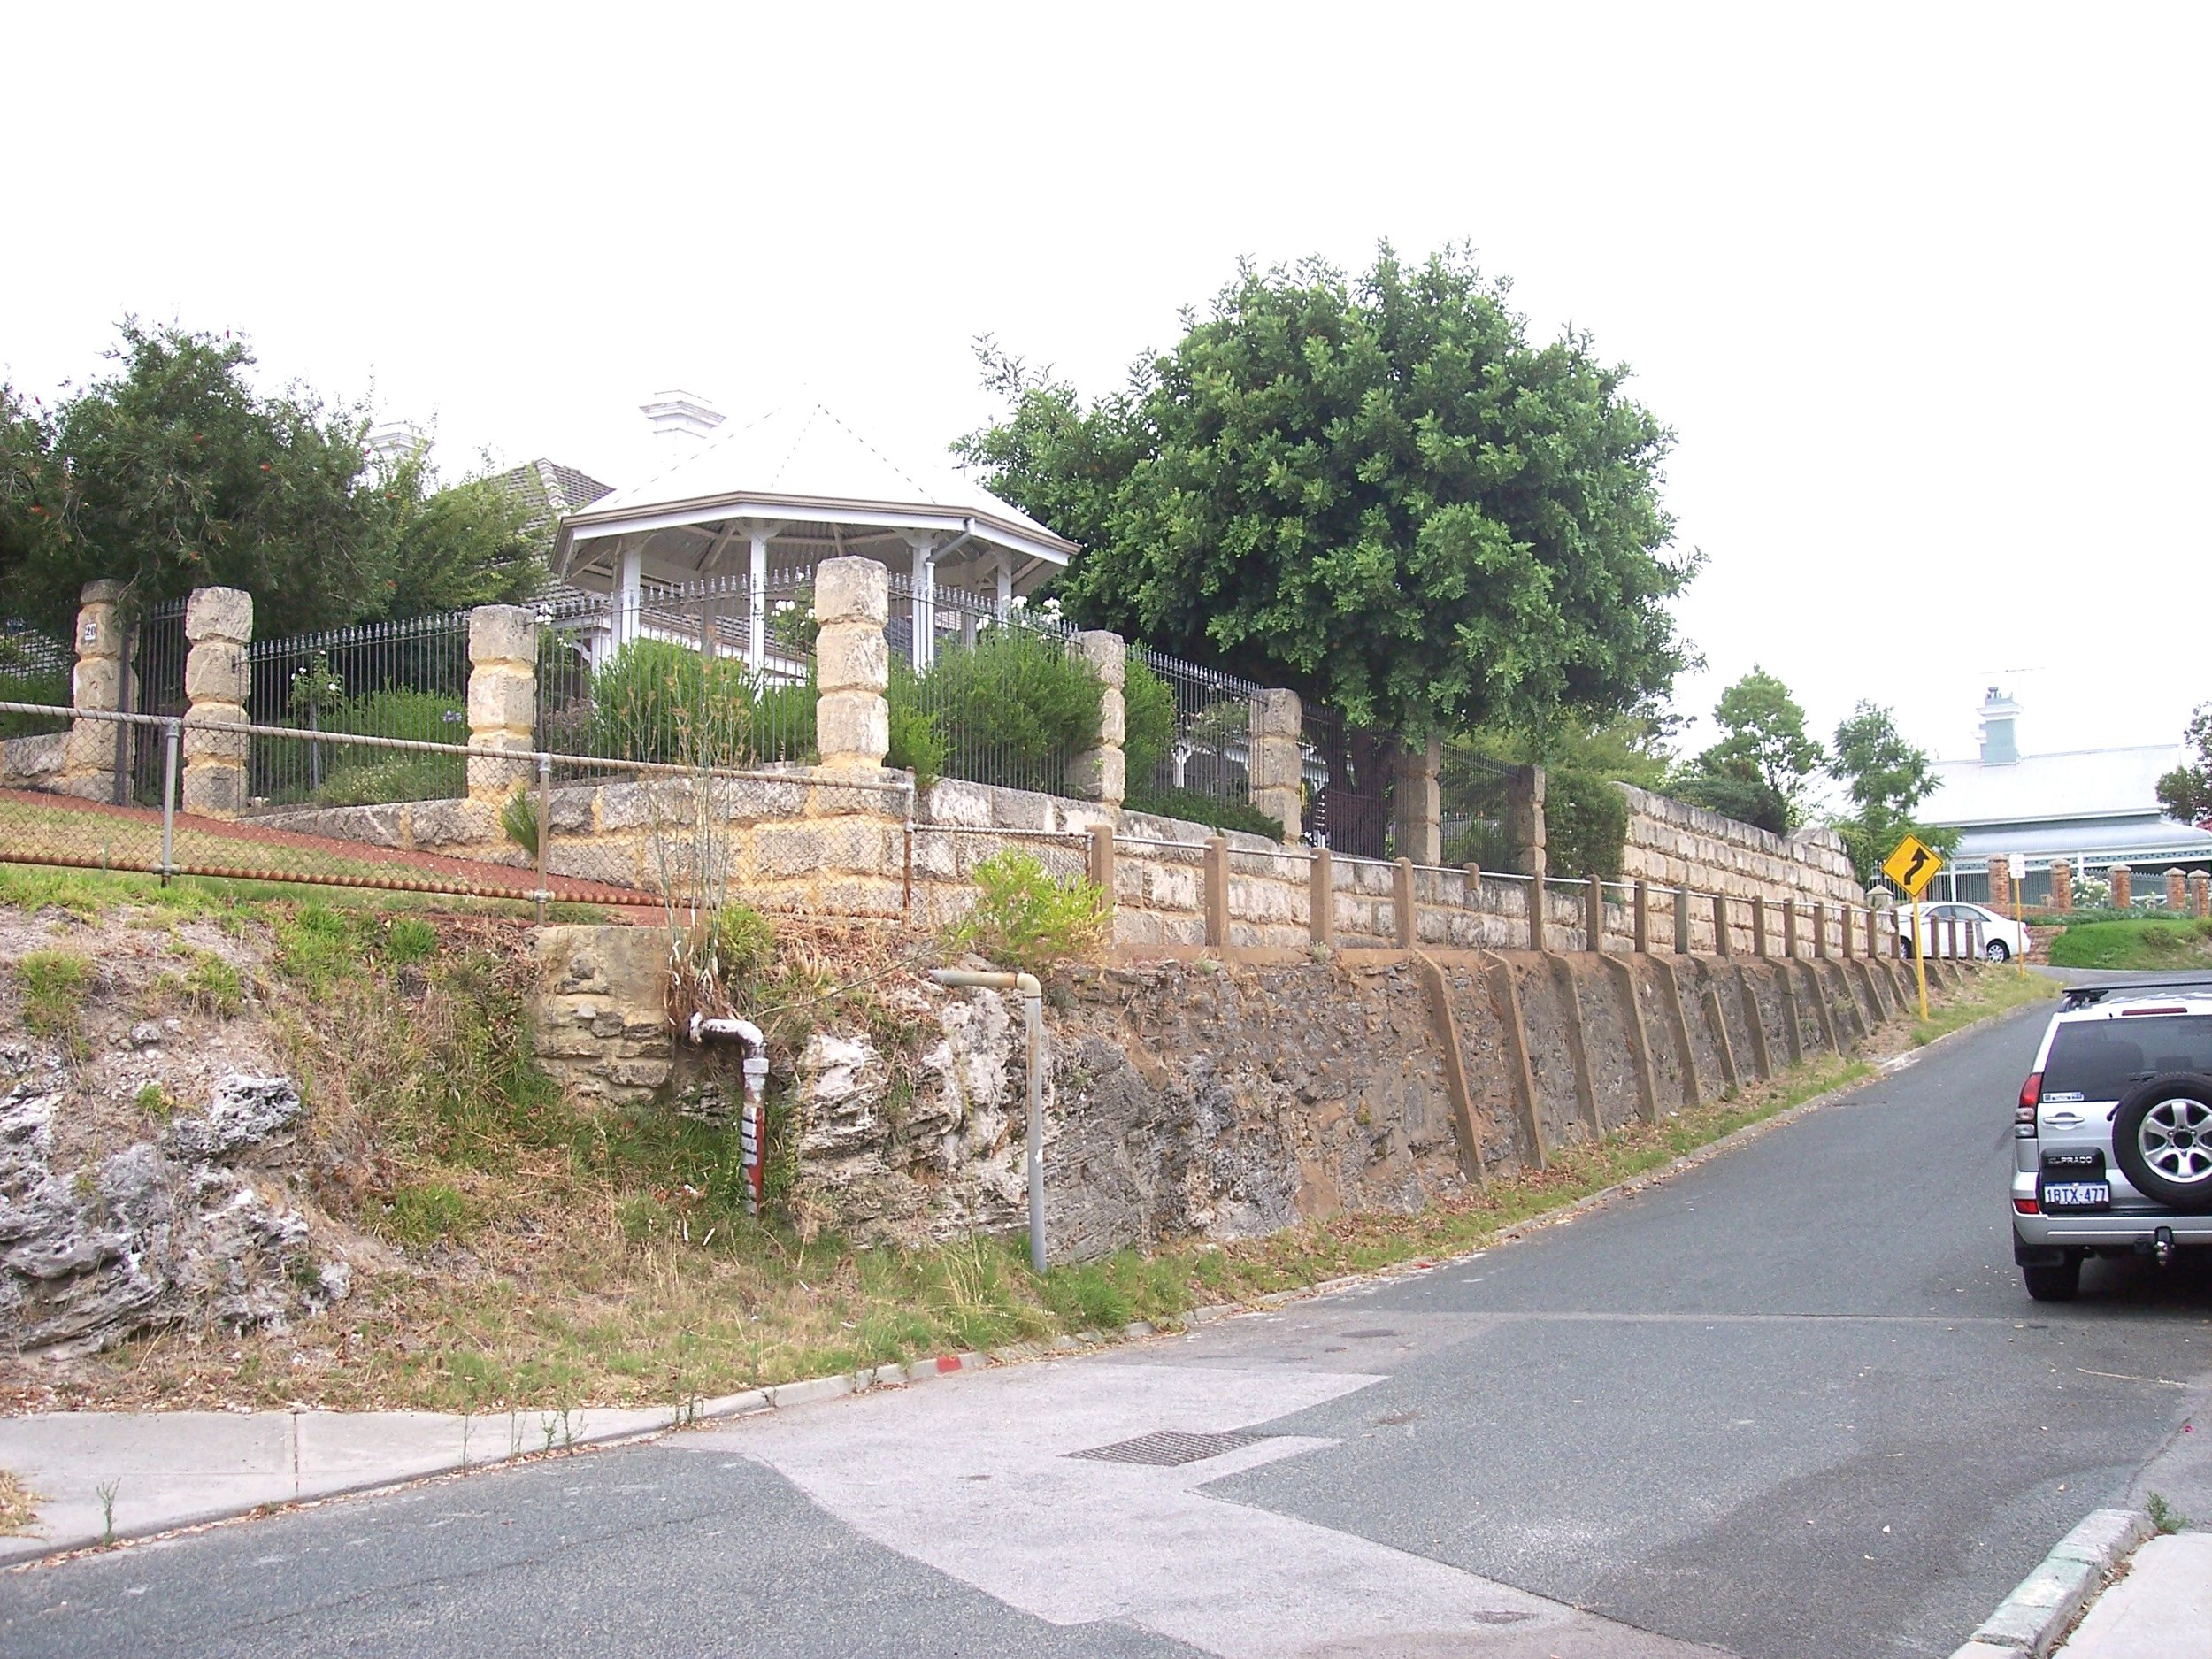 2-3-06 View E to 20 from street.jpg